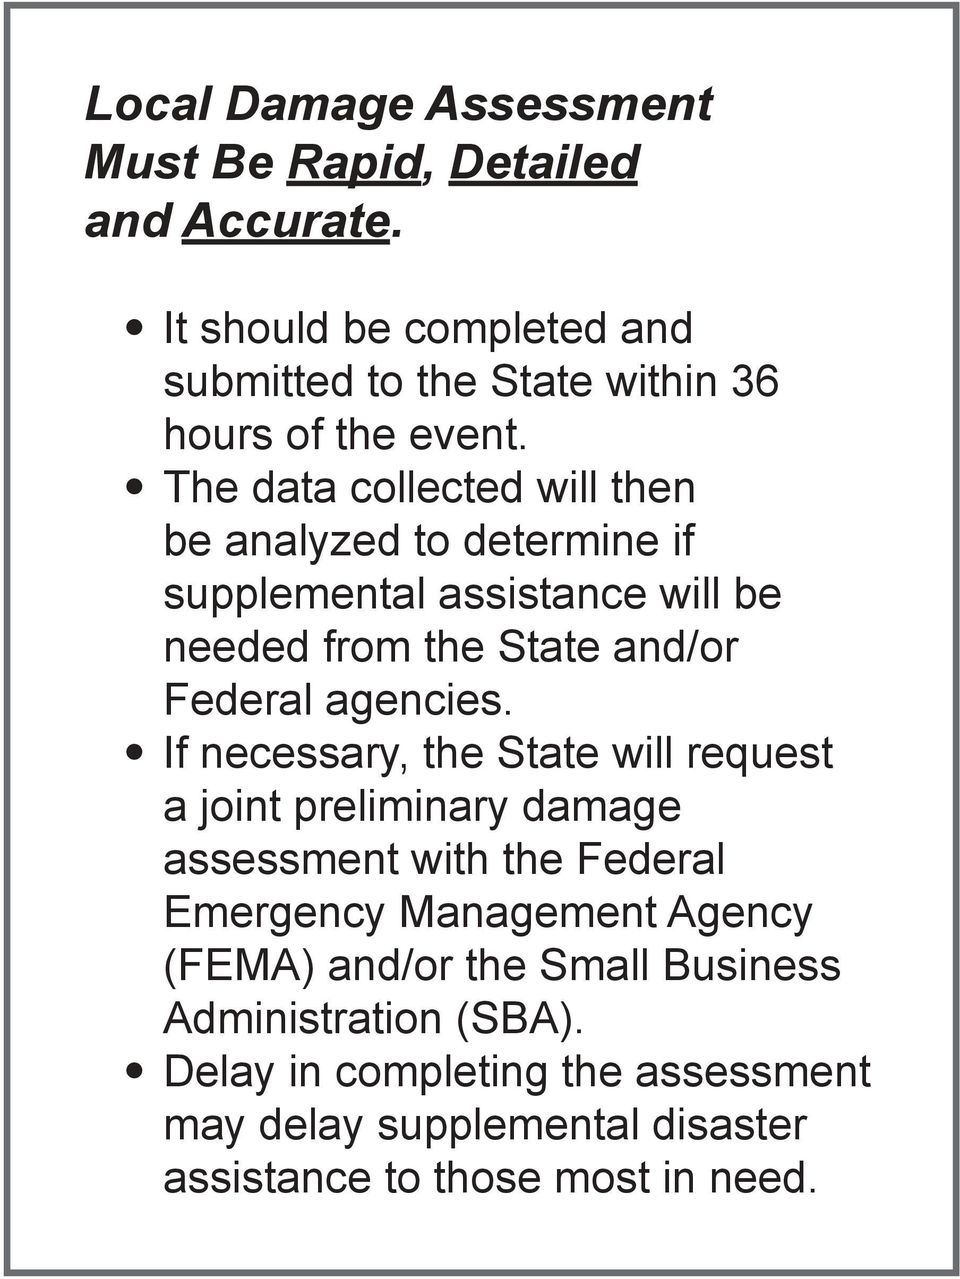 The data collected will then be analyzed to determine if supplemental assistance will be needed from the State and/or Federal agencies.